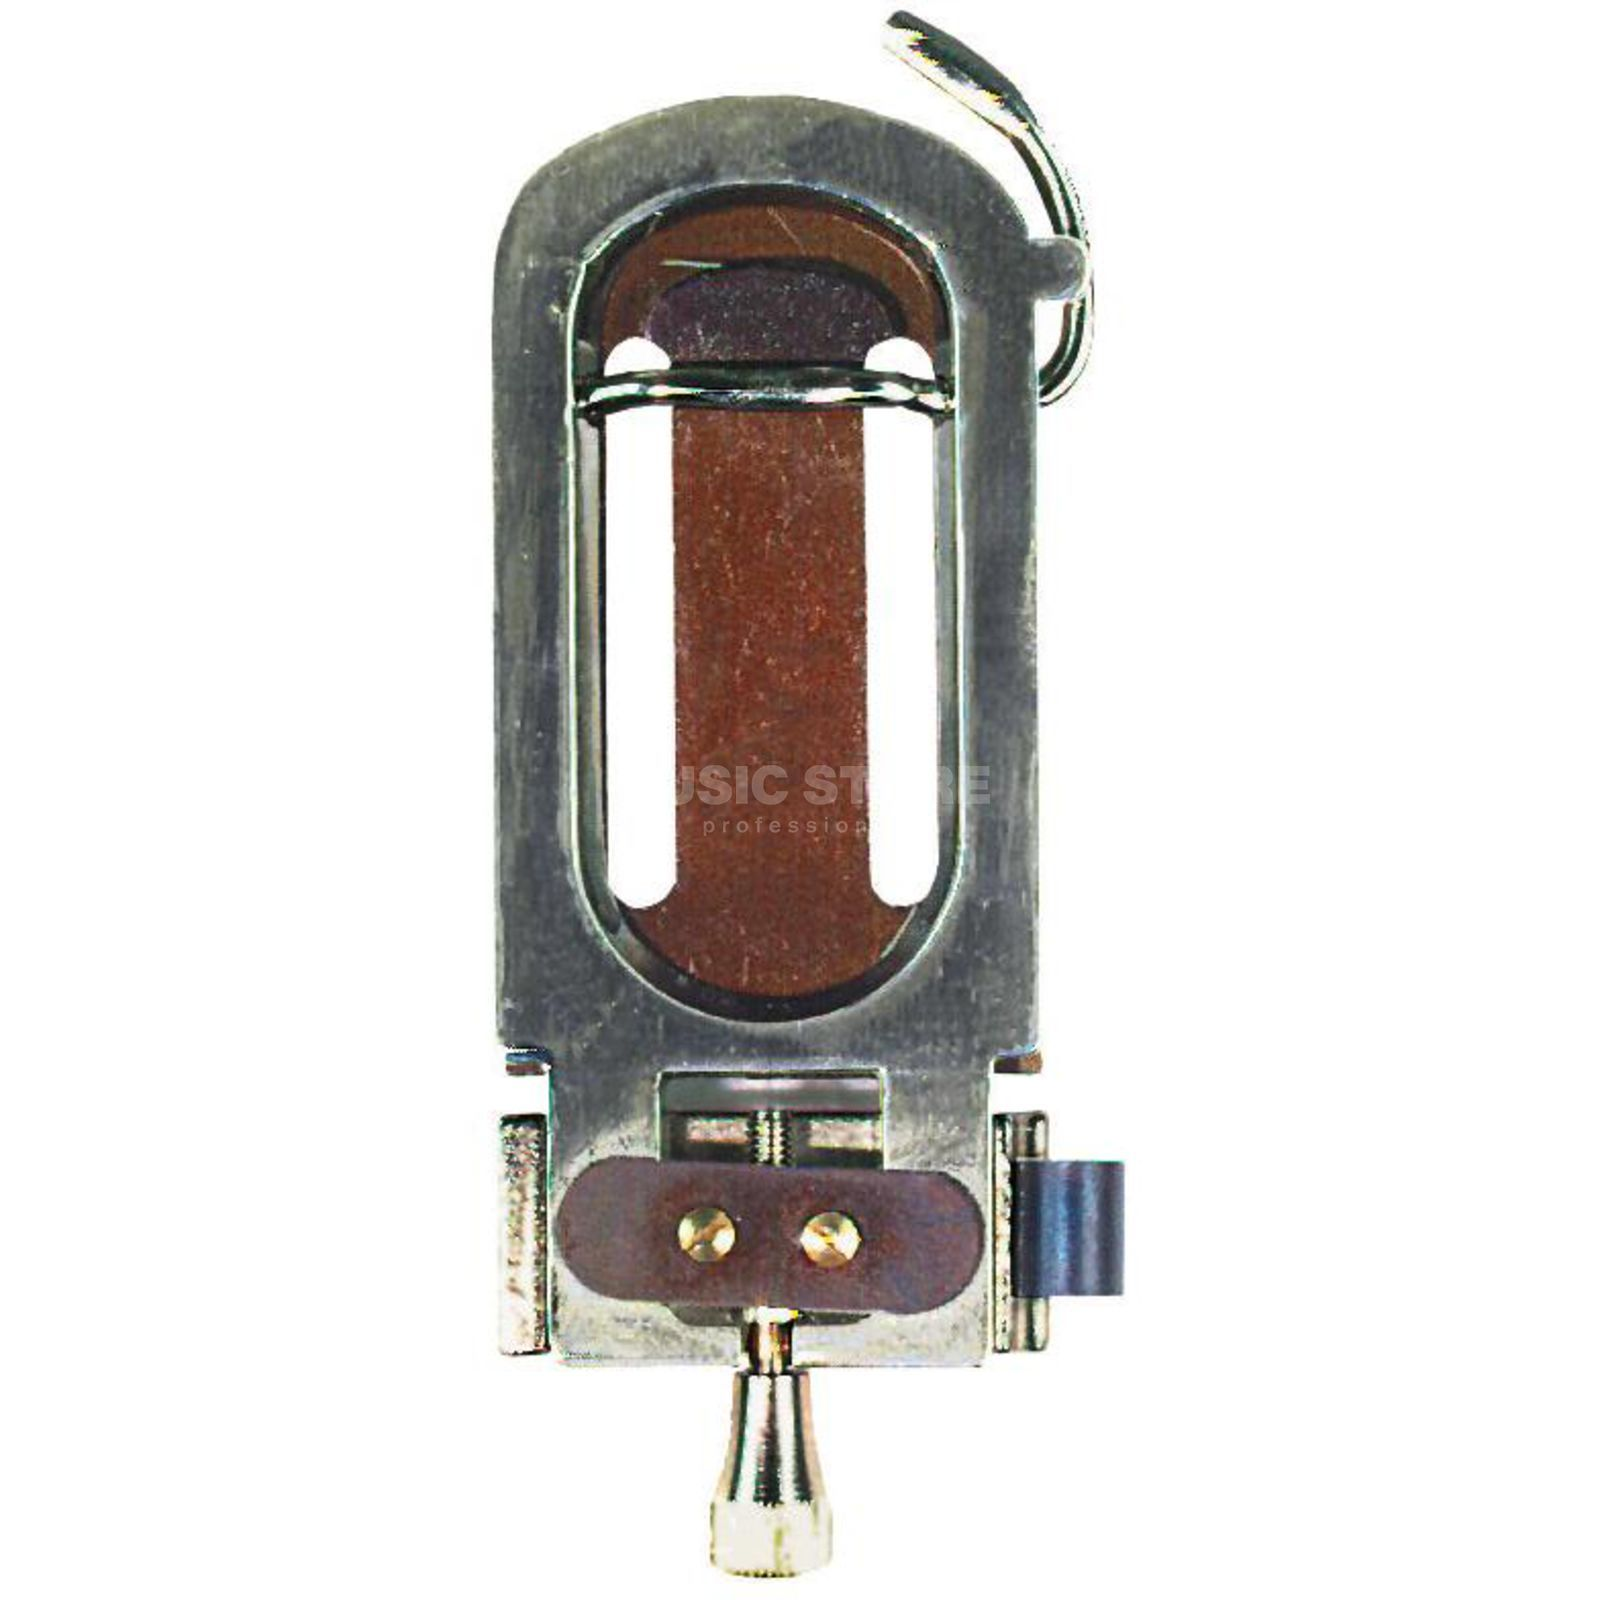 Cordier Reed Cutter Alto Saxophone / Clarinet Product Image